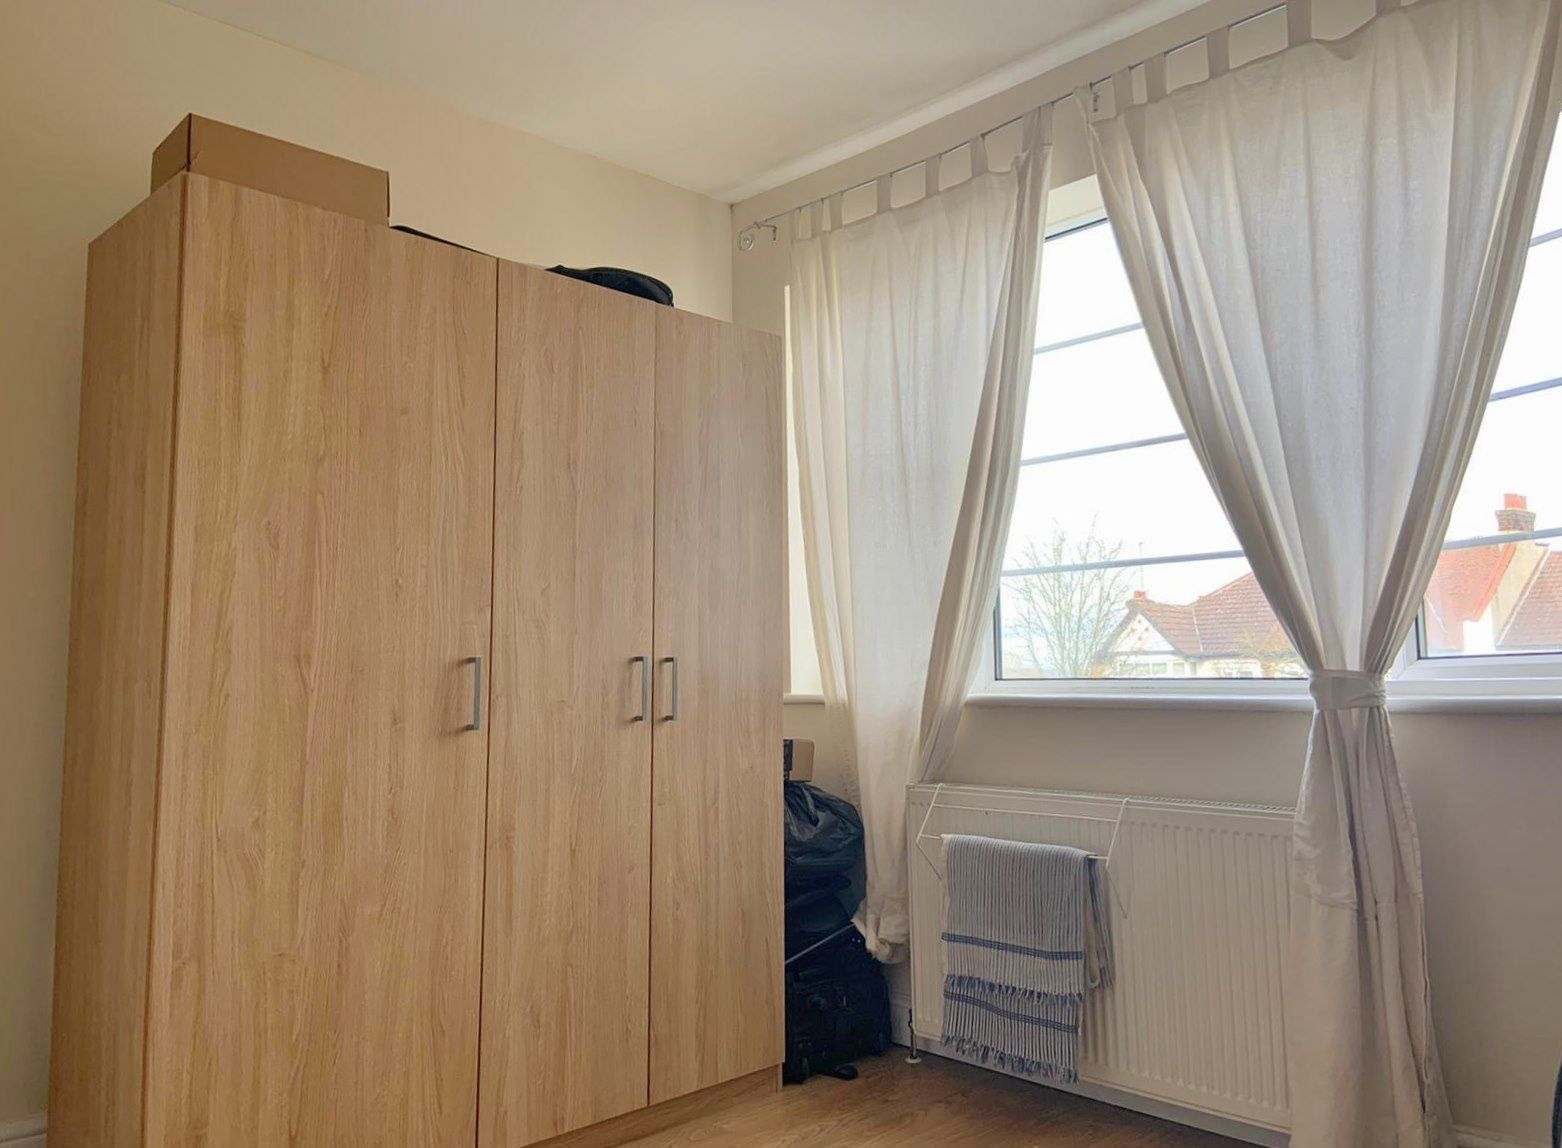 2 bedroom flat flat/apartment To Let in Wembley - Bed 2- gas central heating